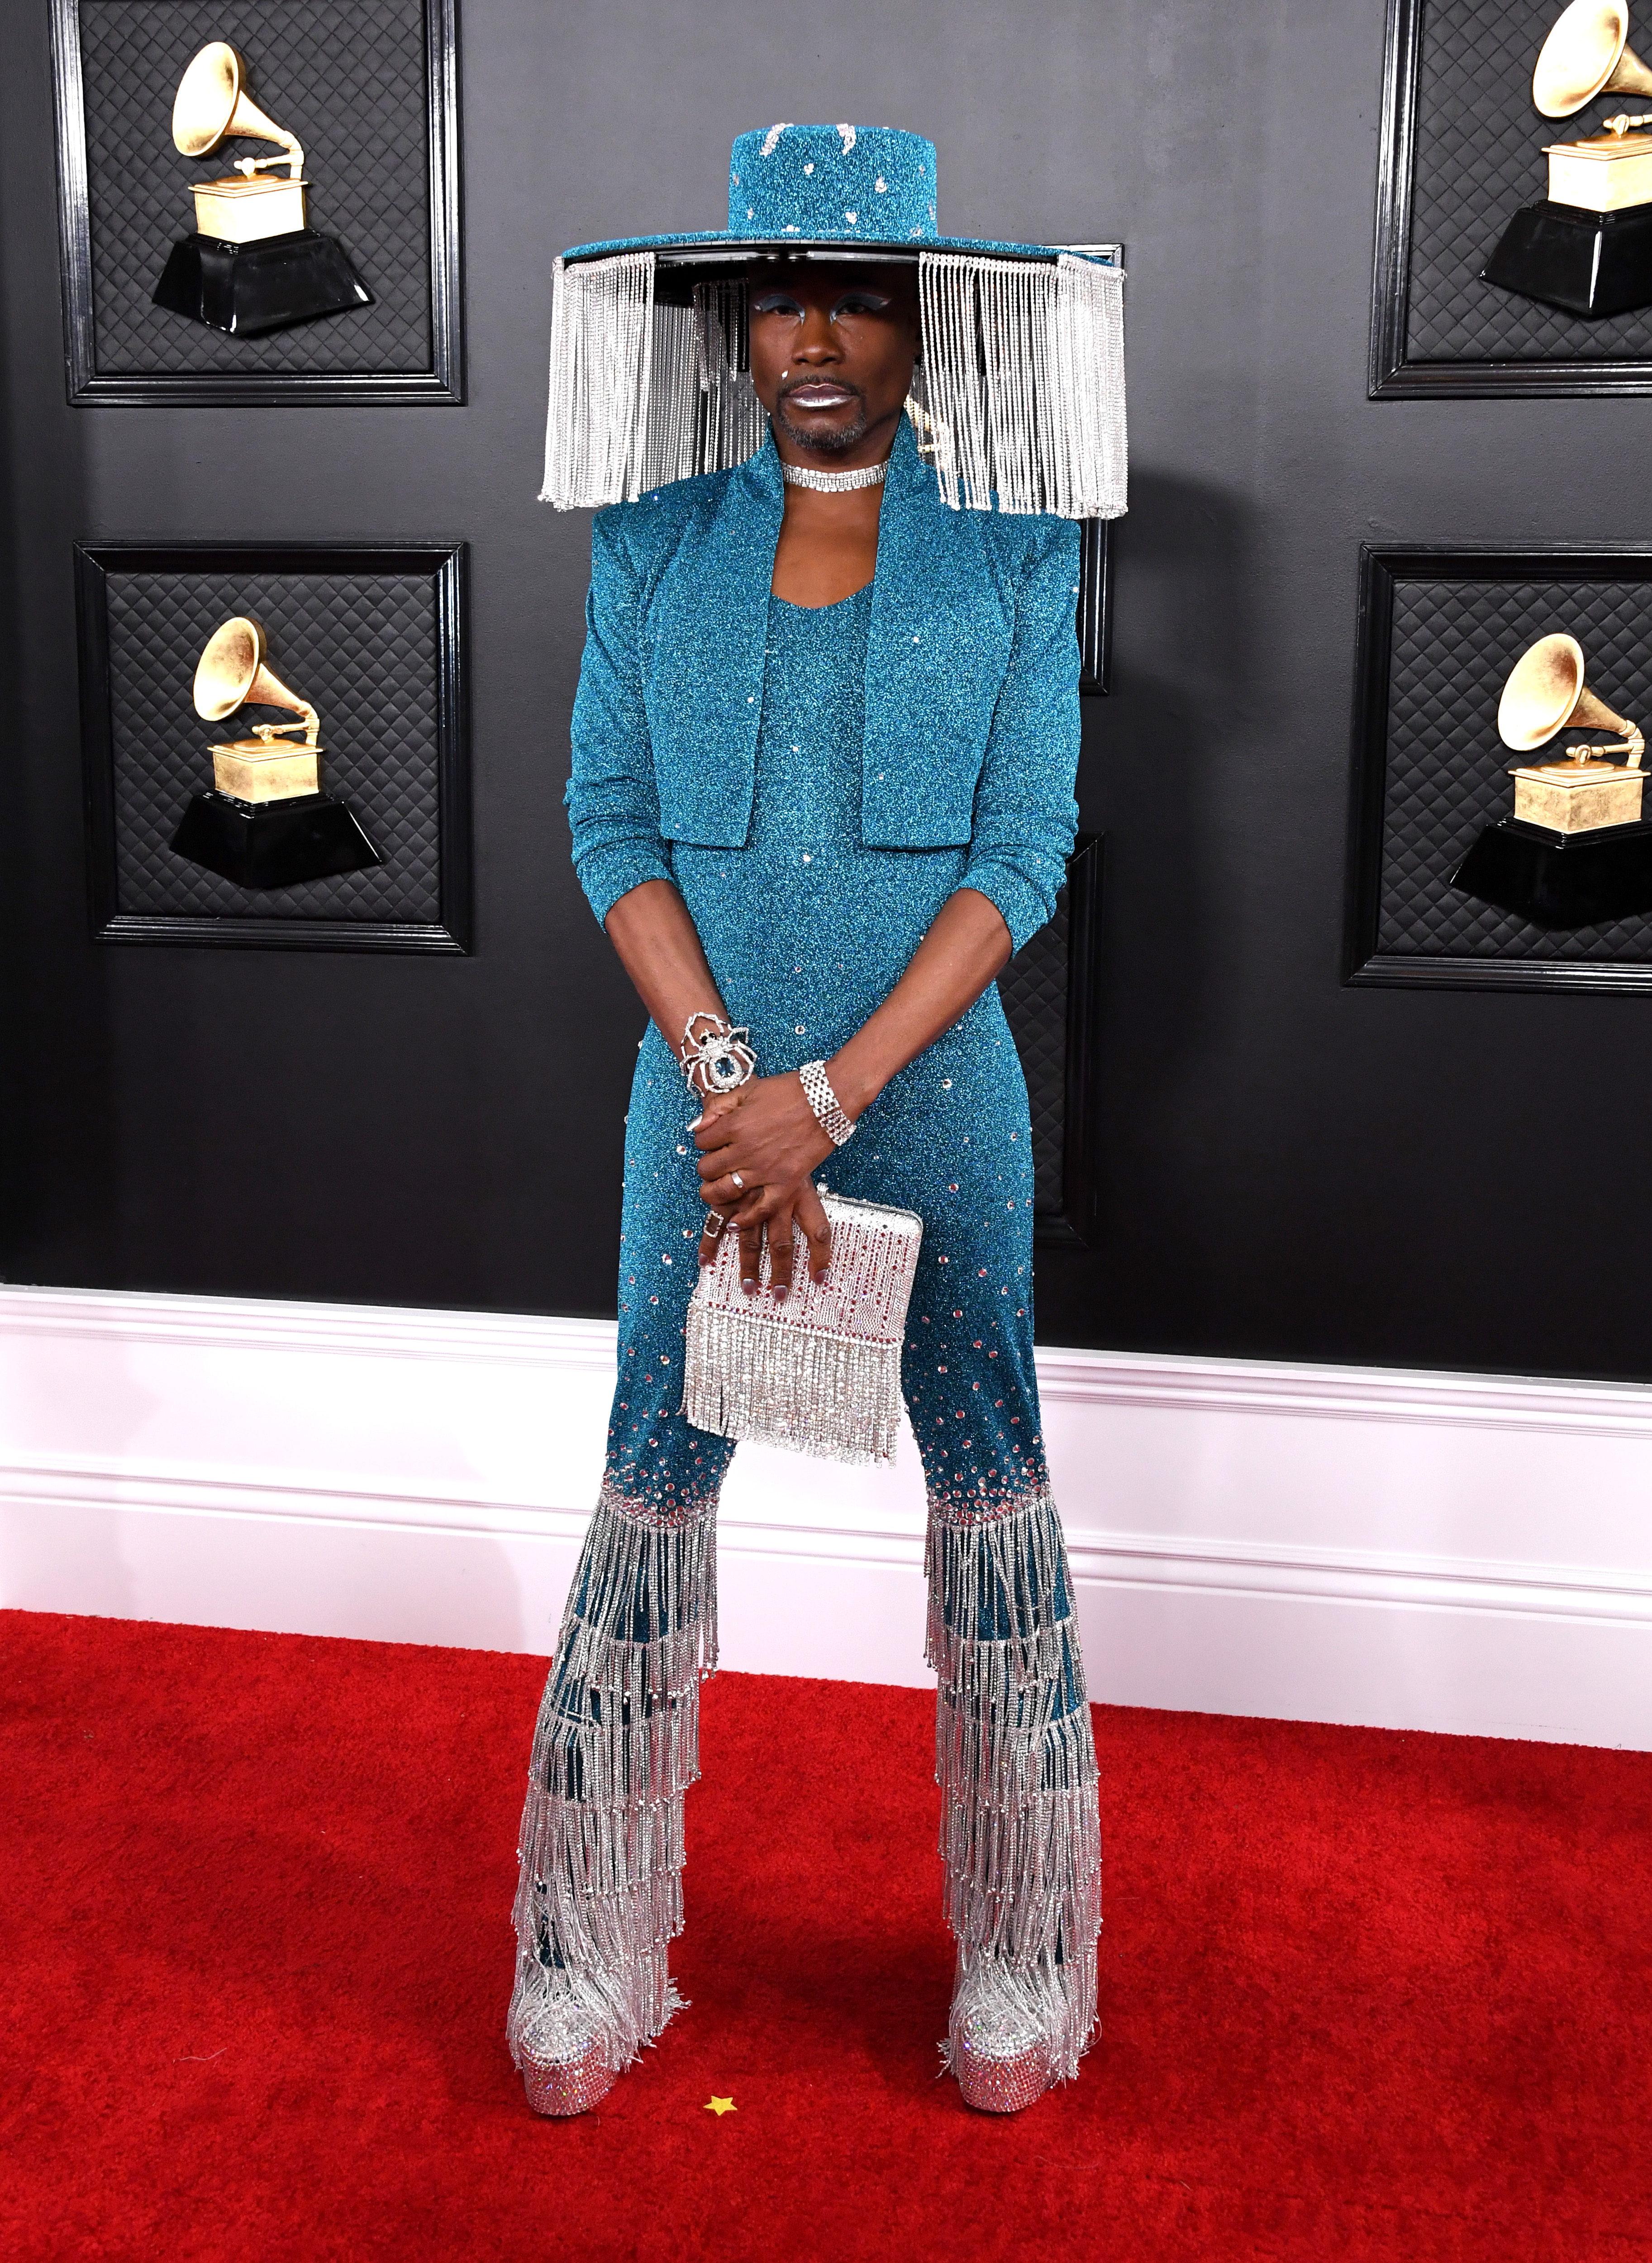 Billy Porter at the Grammy's